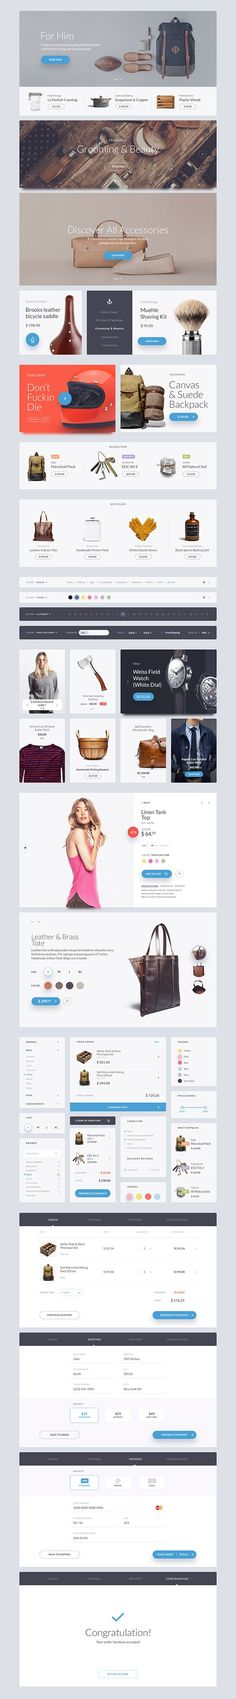 Simplistic Ecommerce #UI #UX love the standout blue CTA. If you like UX, design, or design thinking, check out theuxblog.com podcast https://itunes.apple.com/us/podcast/ux-blog-user-experience-design/id1127946001?mt=2